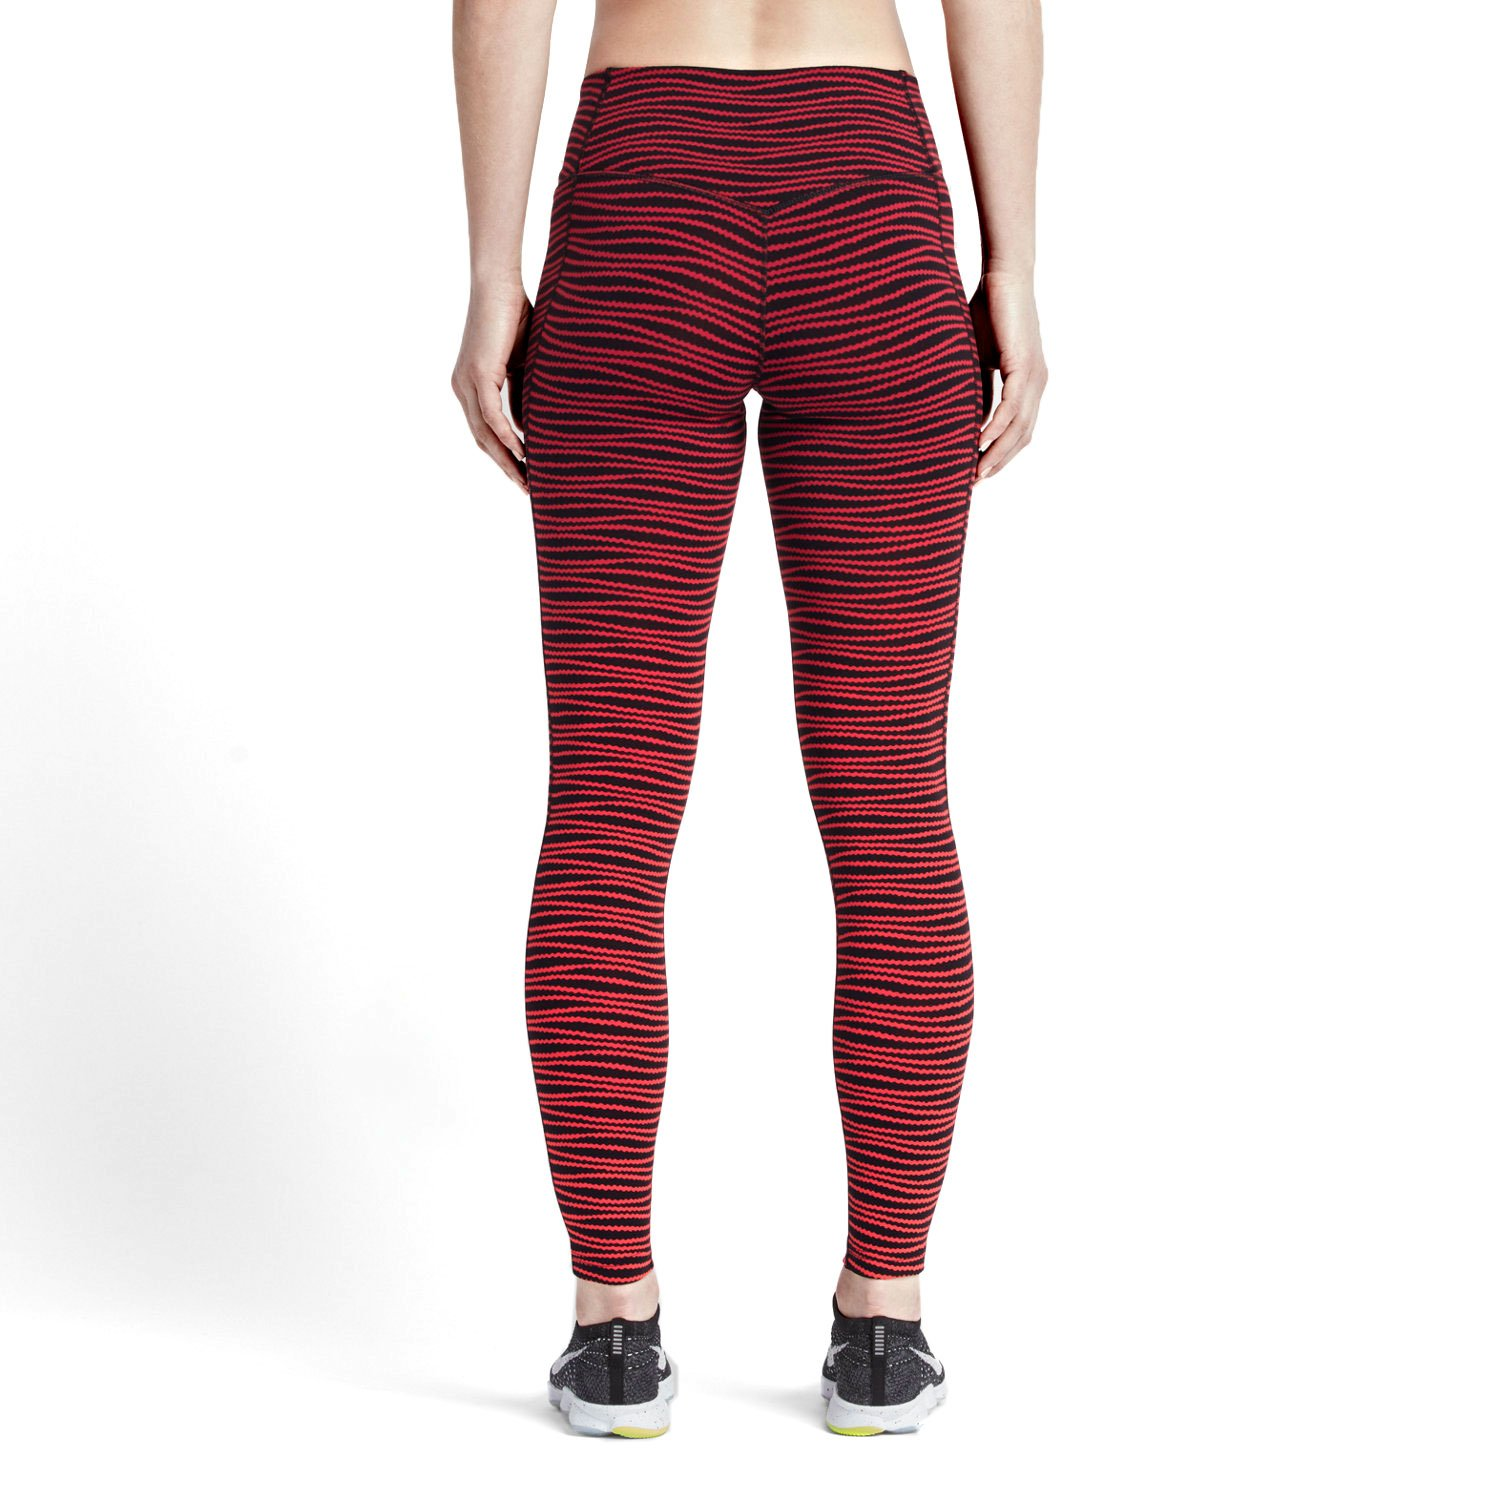 ff6a0de117773 Nike Womens Printed Legendary Tight Athletic Pants at Amazon Women's  Clothing store: